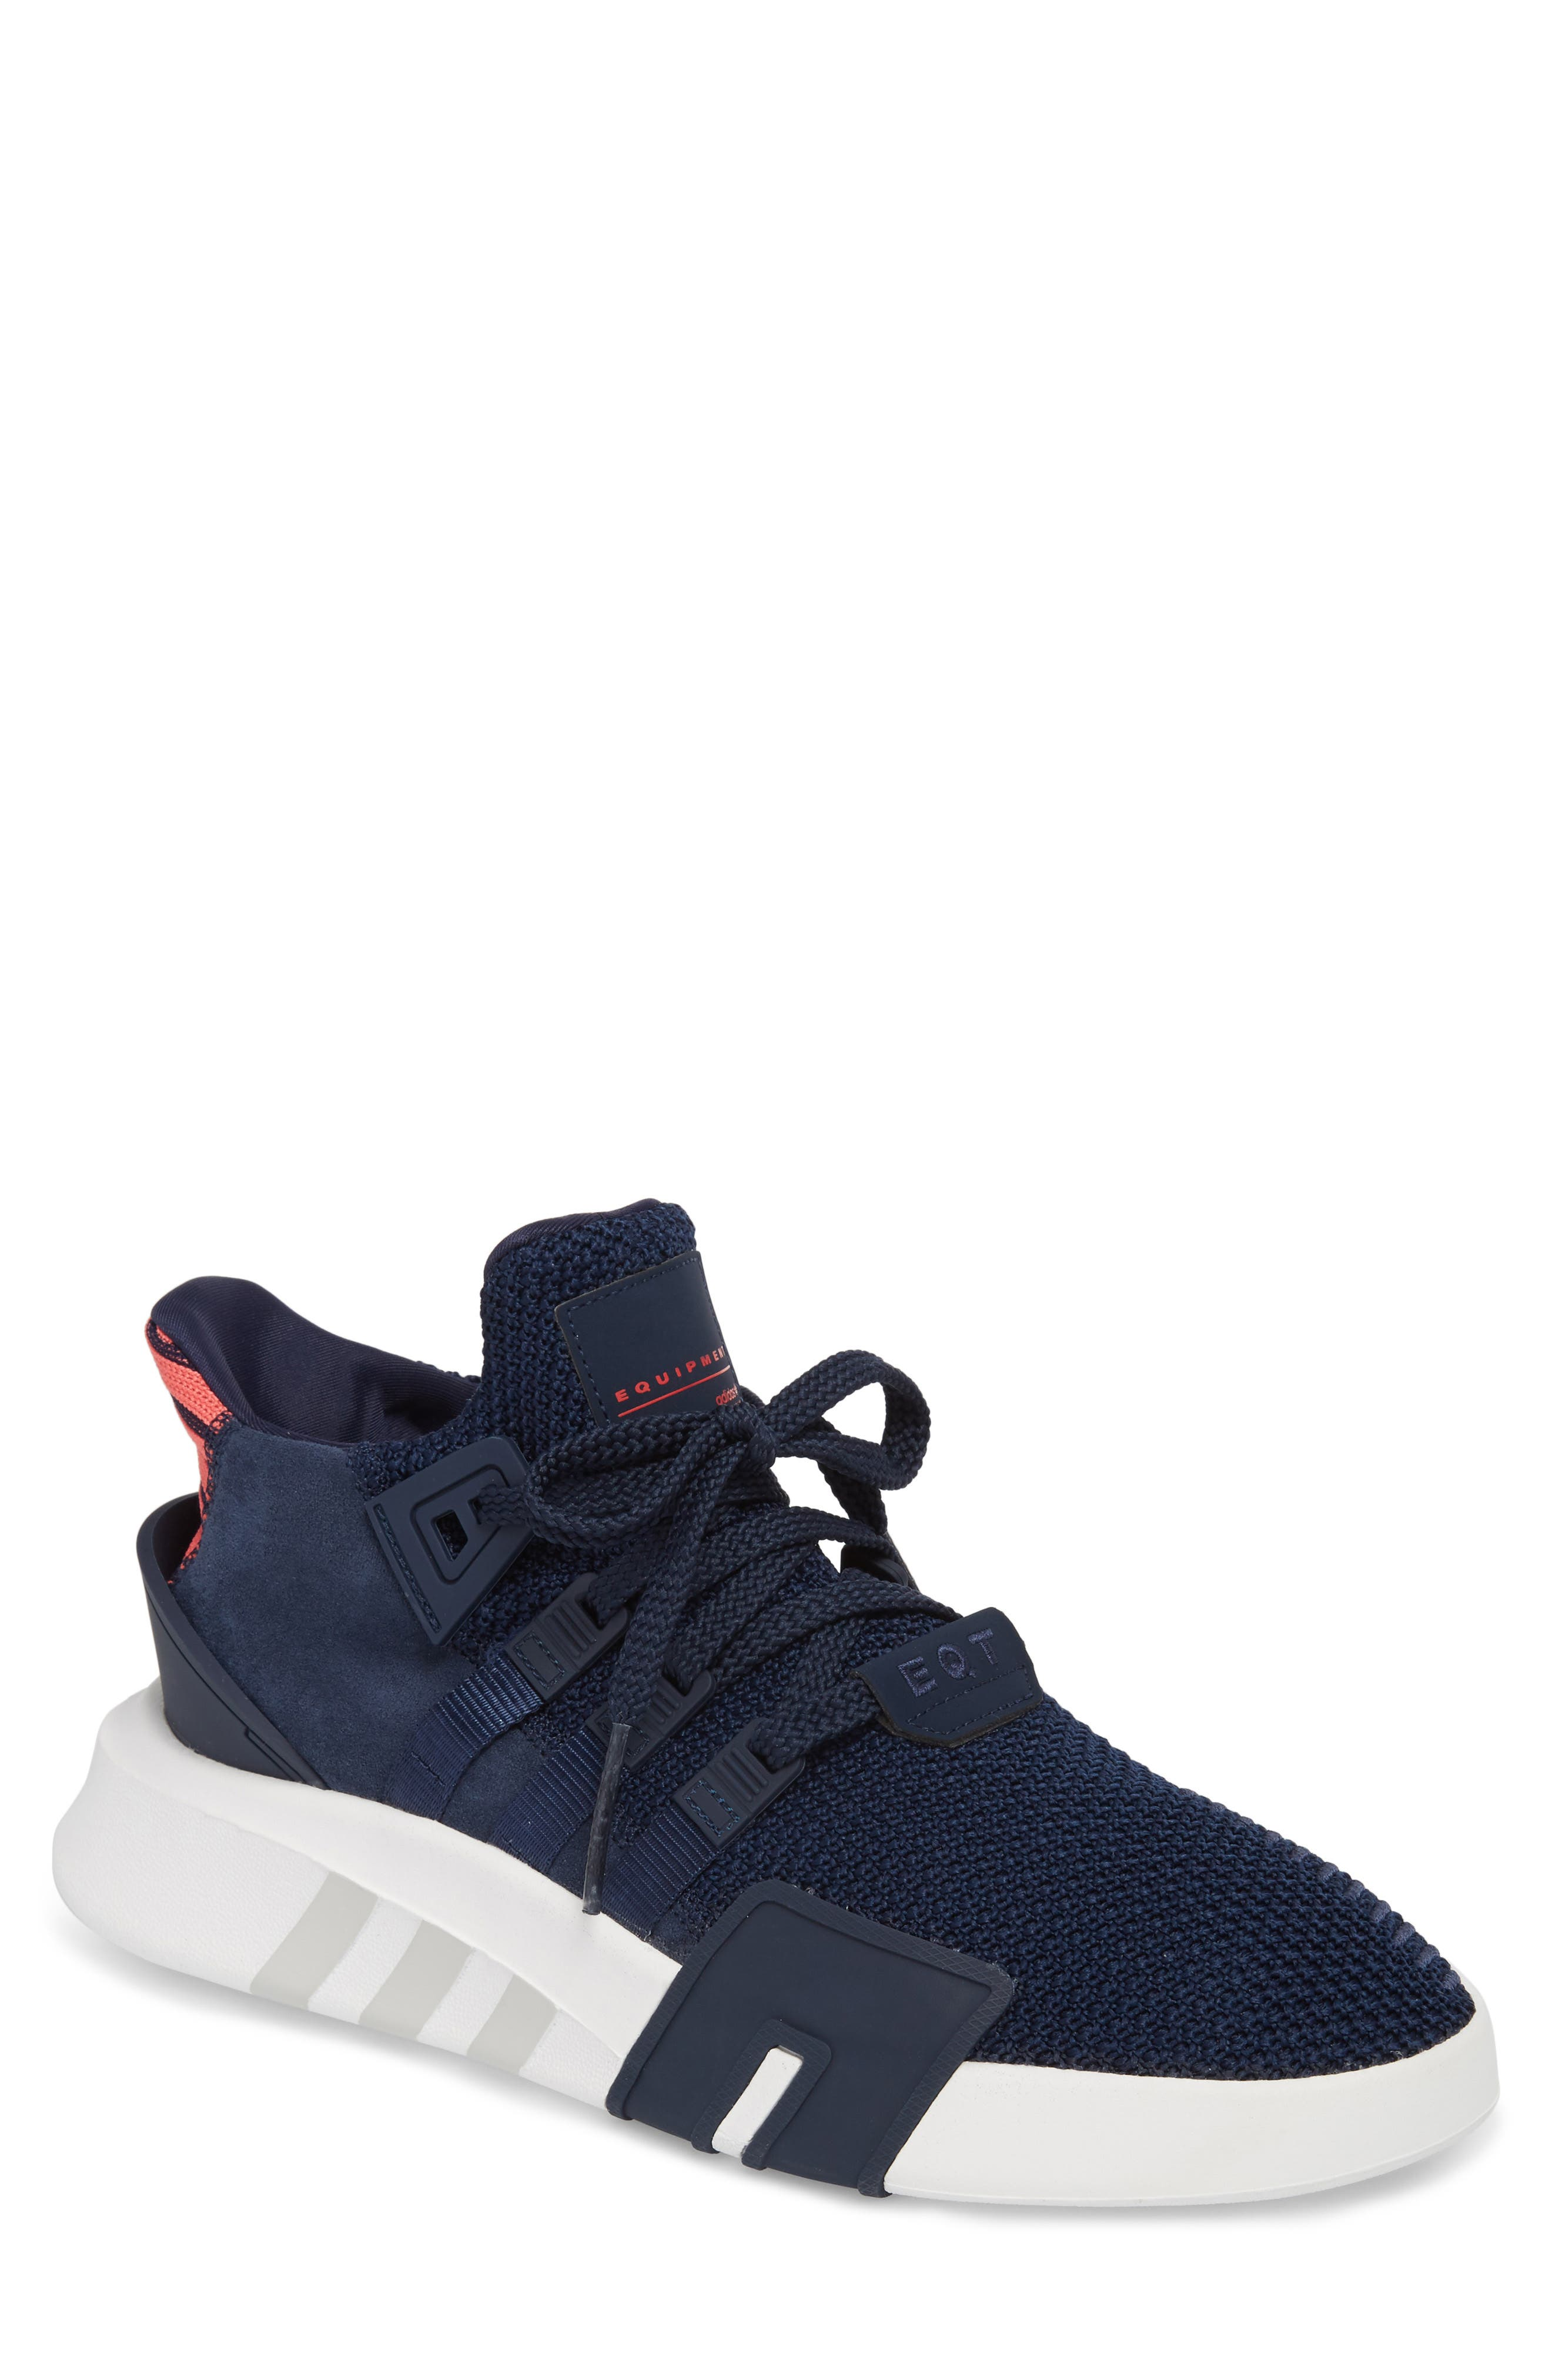 EQT Basketball ADV Sneaker,                             Main thumbnail 1, color,                             Collegiate Navy/ Real Coral